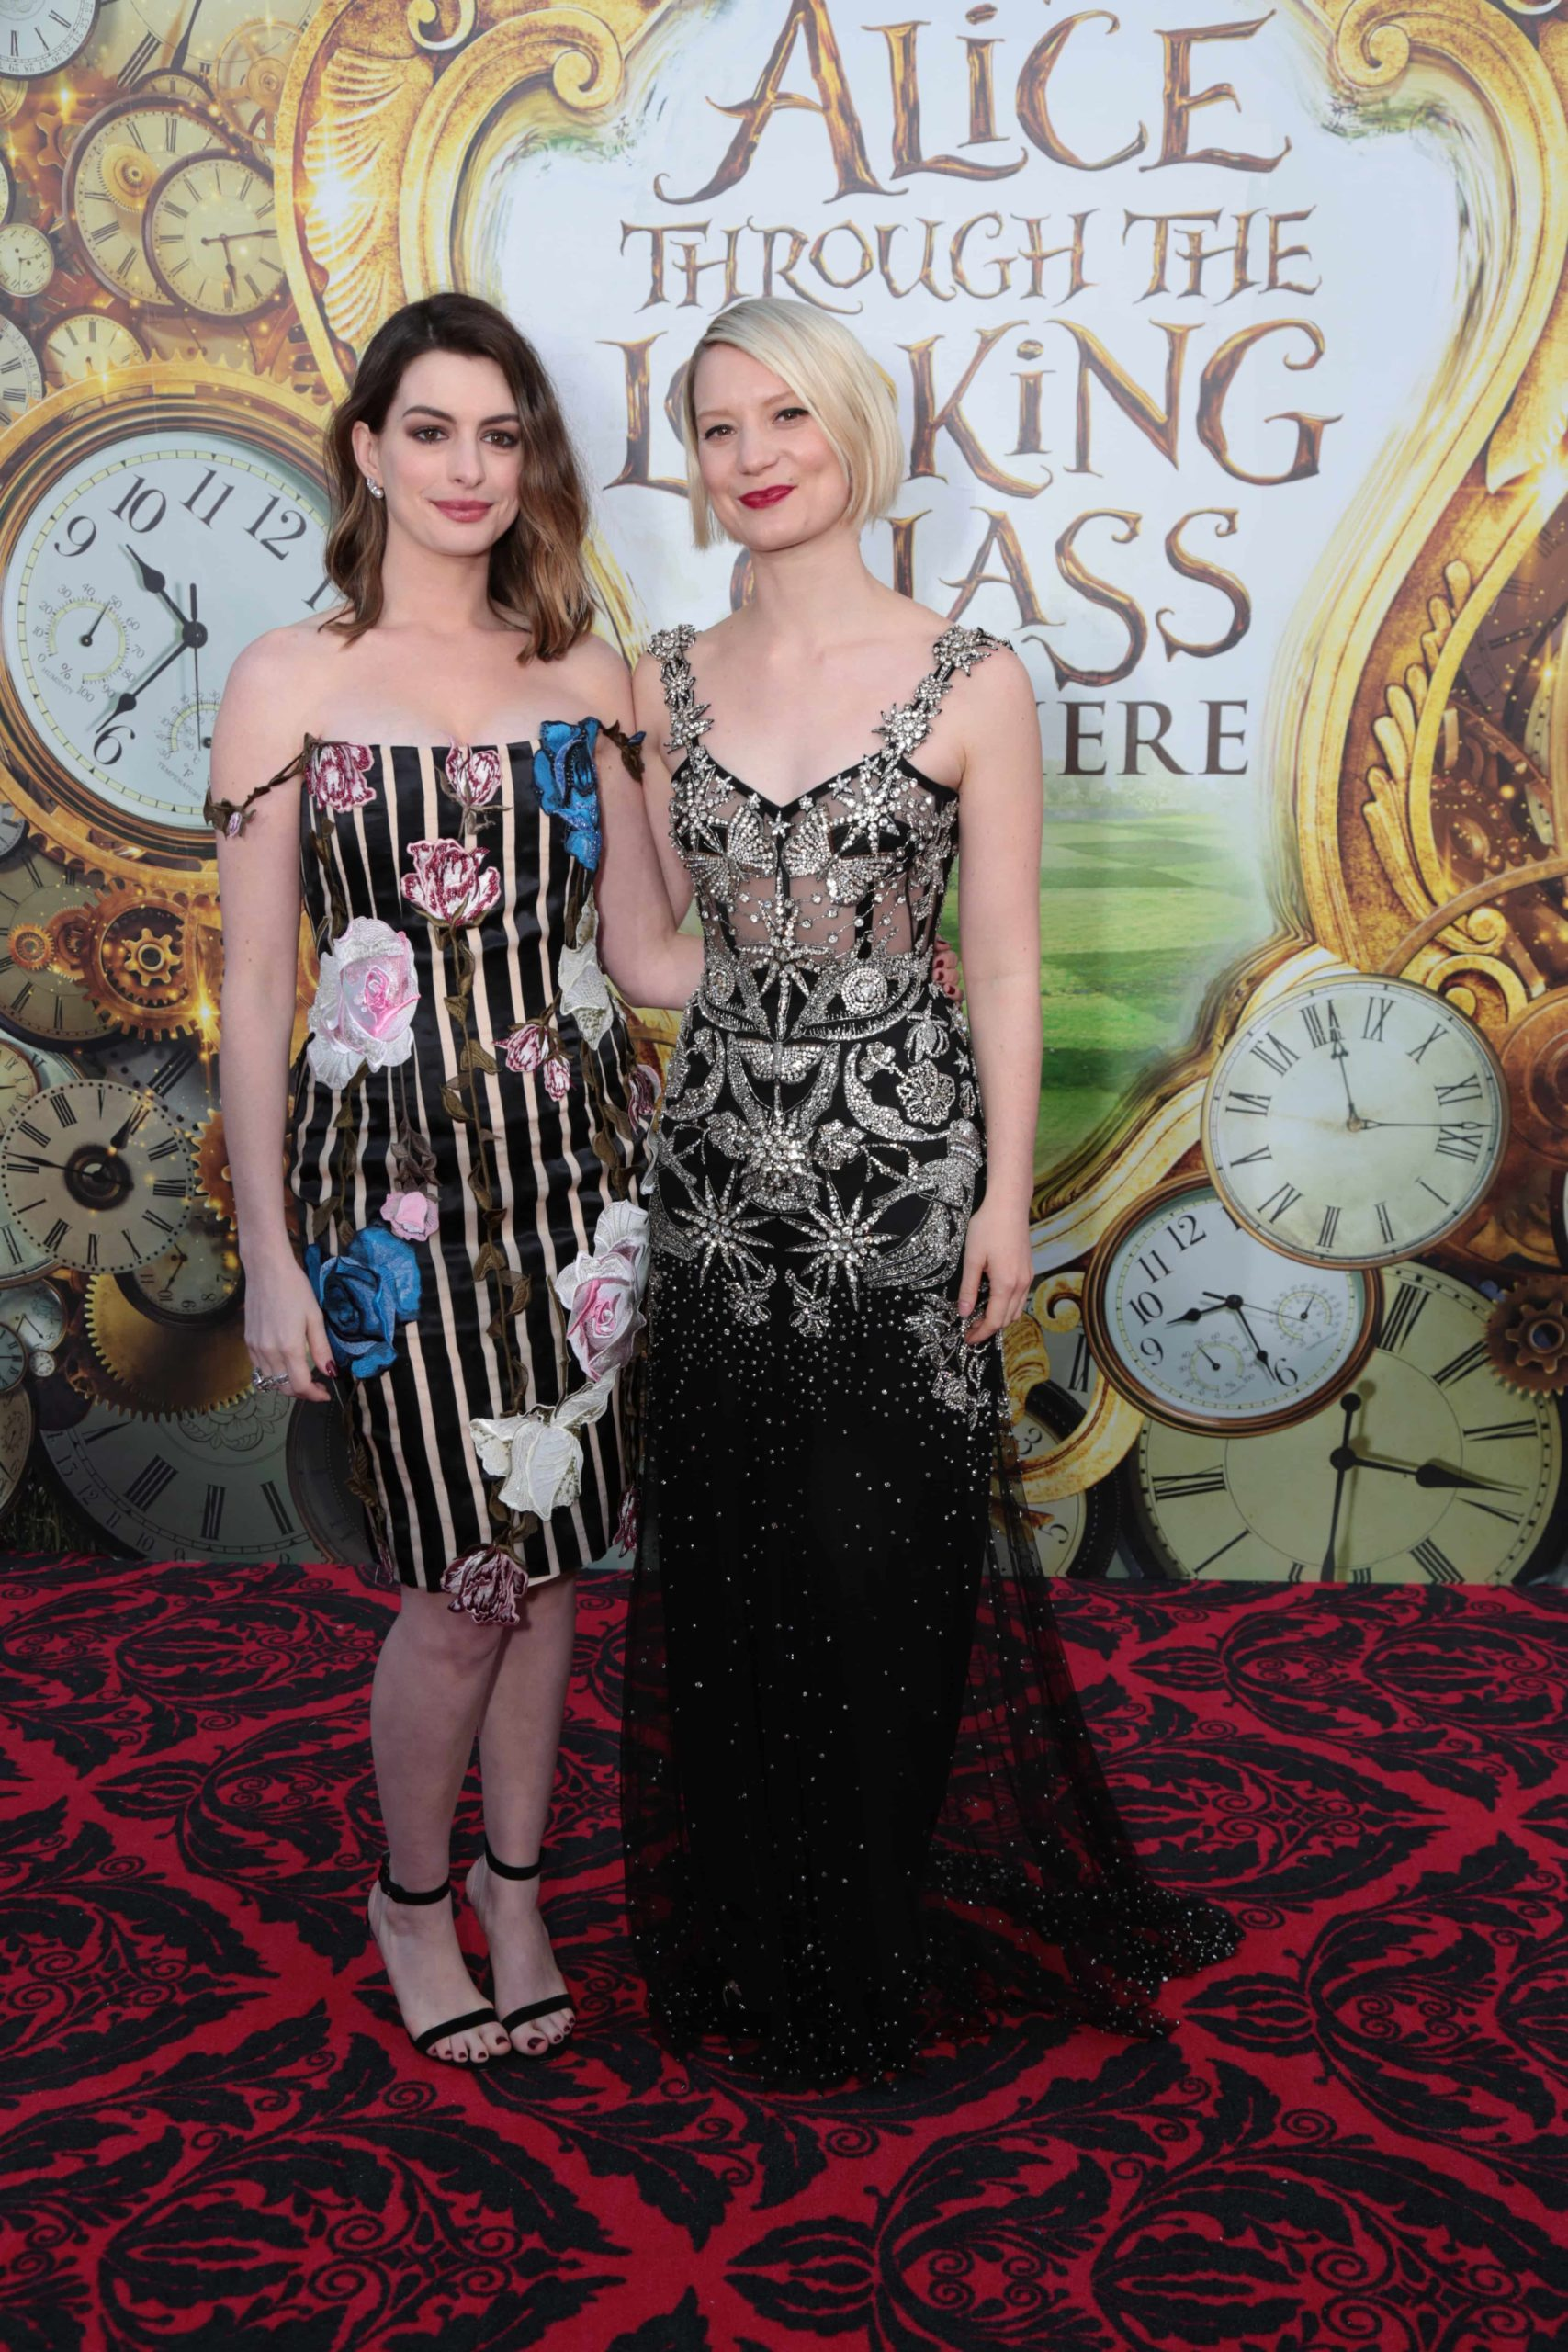 """Anne Hathaway and Mia Wasikowska pose together at The US Premiere of Disney's """"Alice Through the Looking Glass"""" at the El Capitan Theater in Los Angeles, CA on Monday, May 23, 2016. (Photo: Alex J. Berliner/ABImages)"""